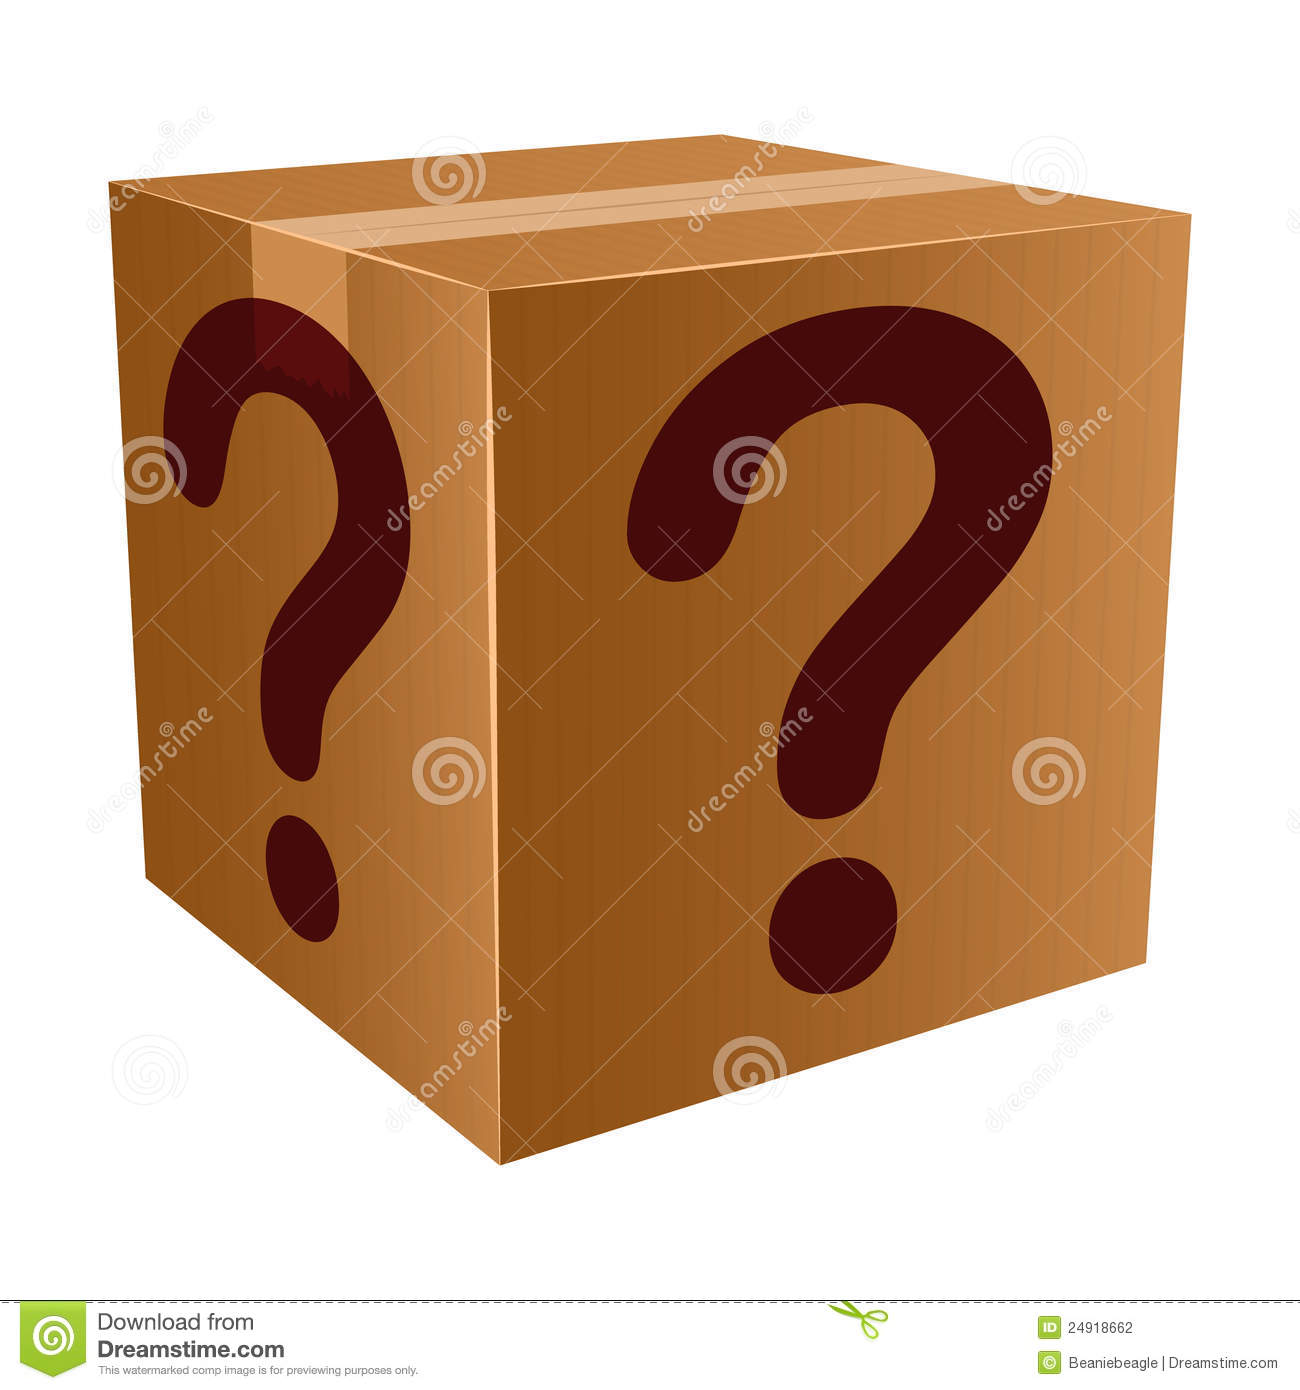 Sherlock Holmes clipart mystery box Images Free Art Images Panda